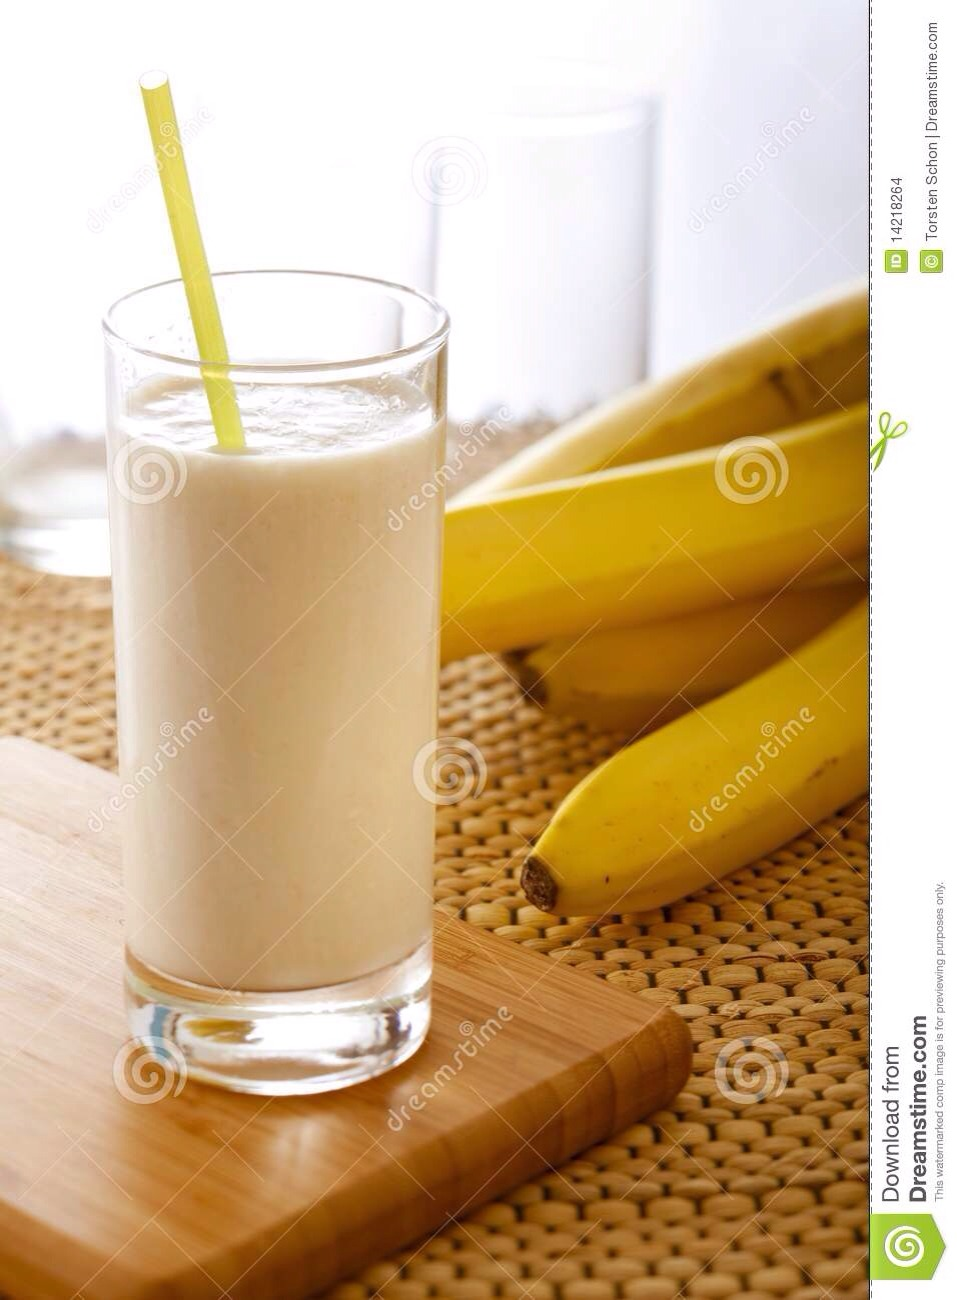 Now you have a fruit milkshake without the guilt!!! This will please any sweet craving and there is nothing but vitamins and nutrients. Yum!!!!